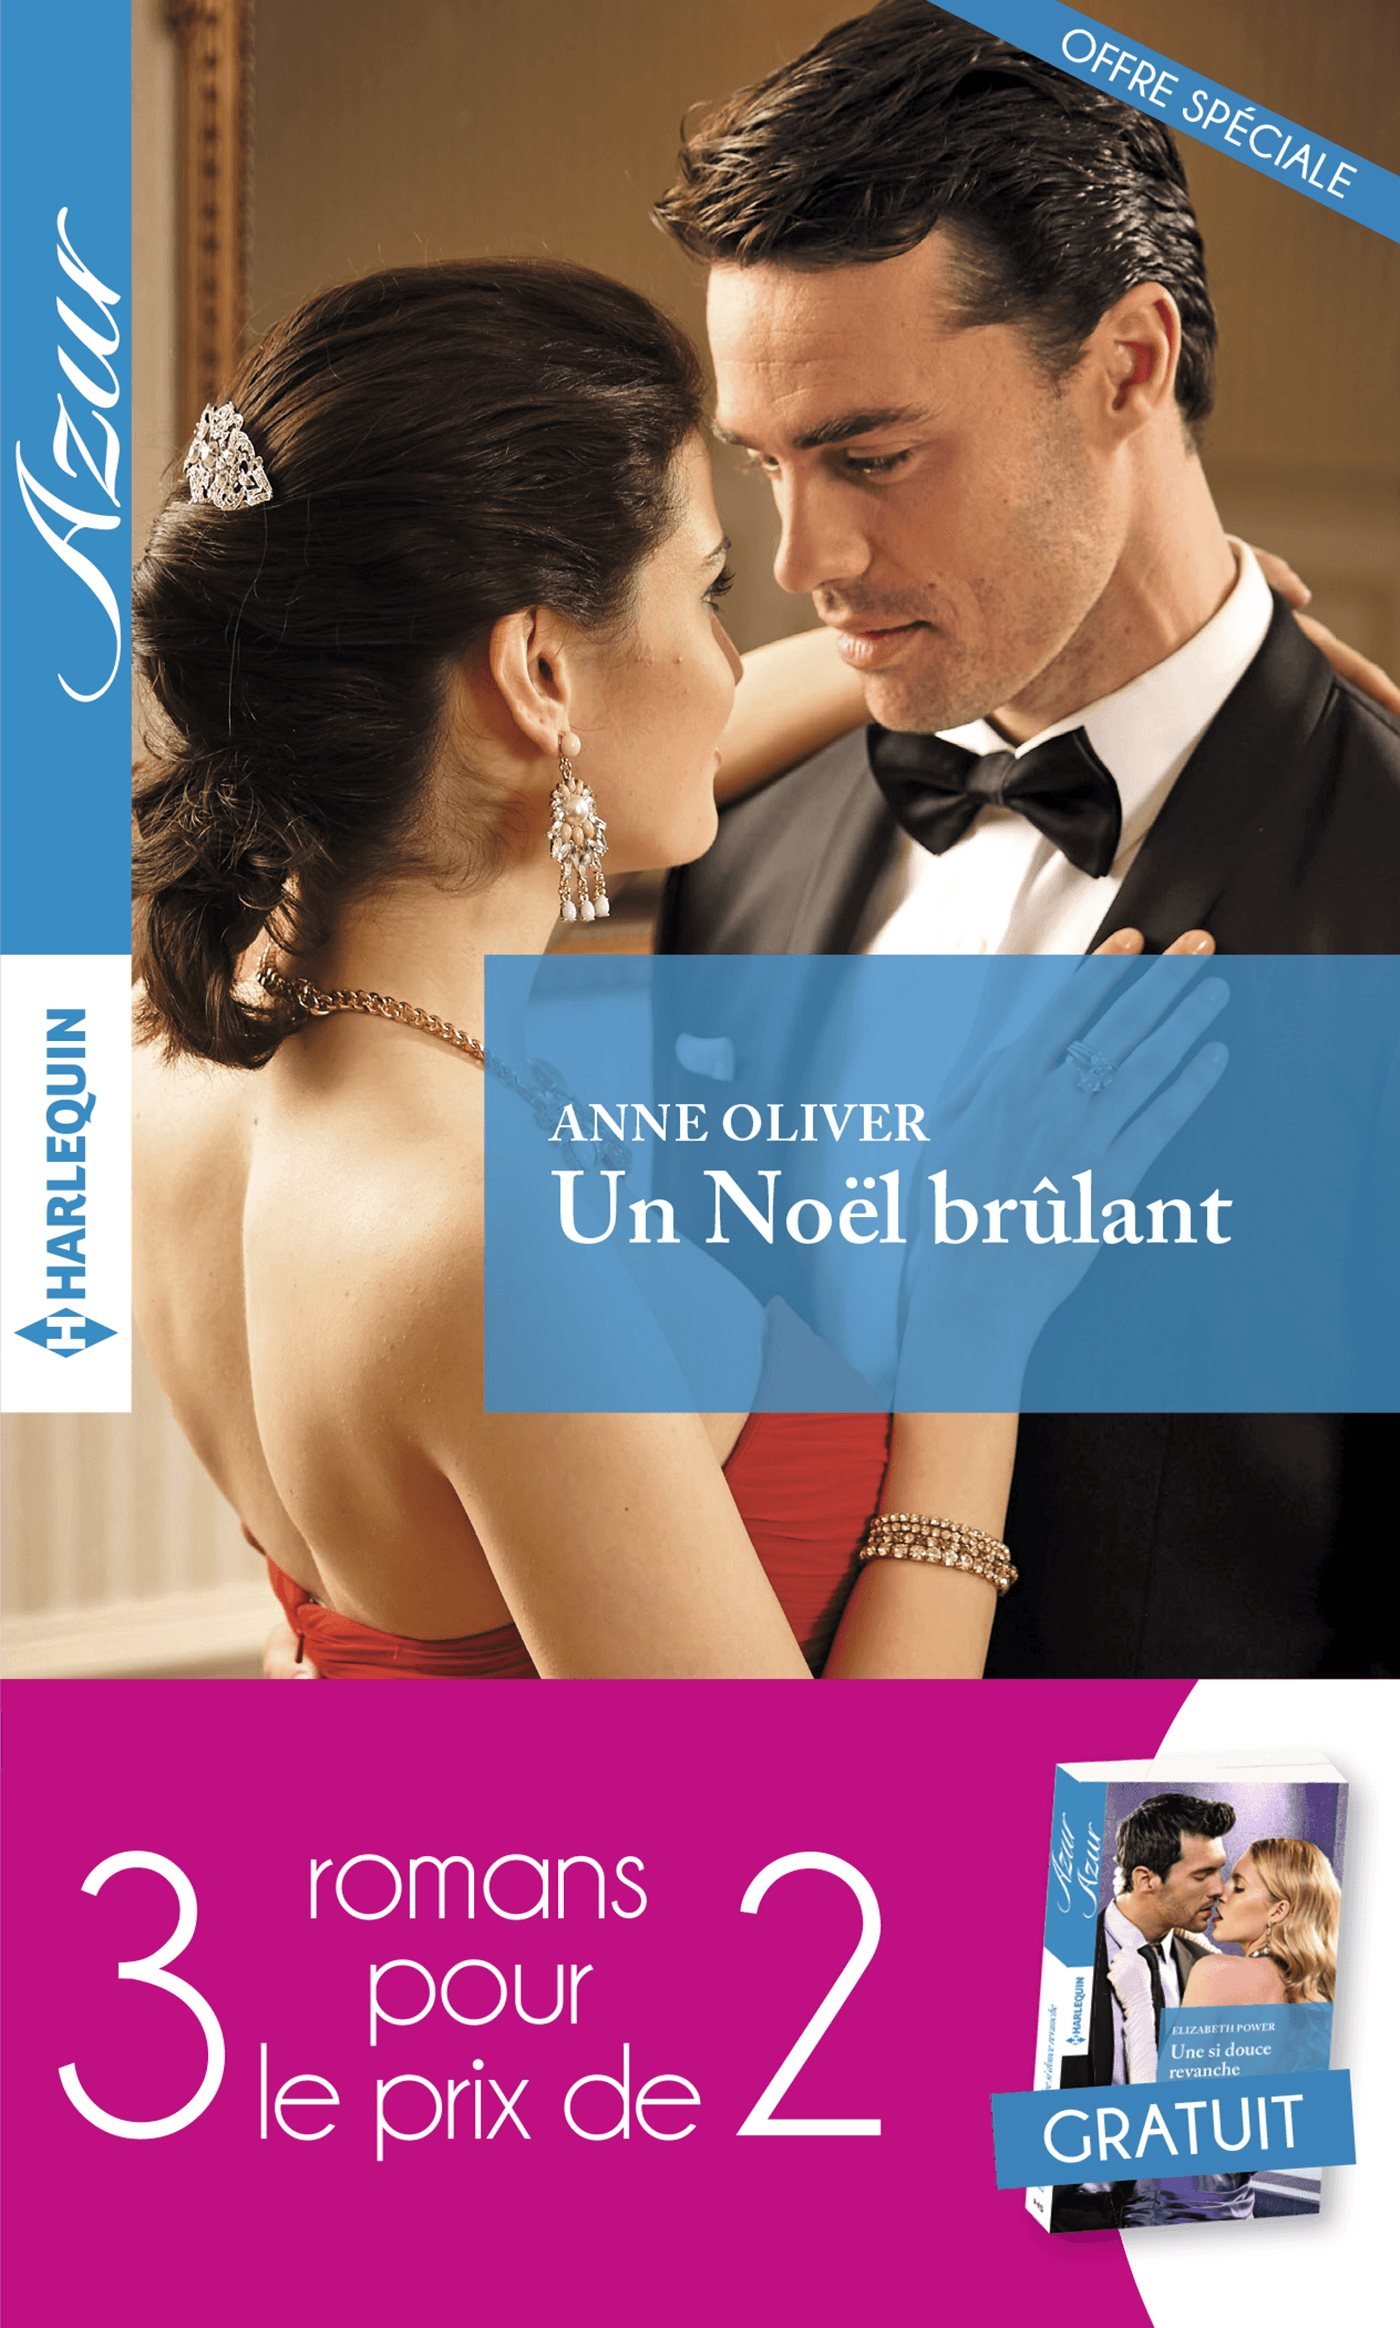 Couverture : Elizabeth Power, Une si douce revanche, Harlequin